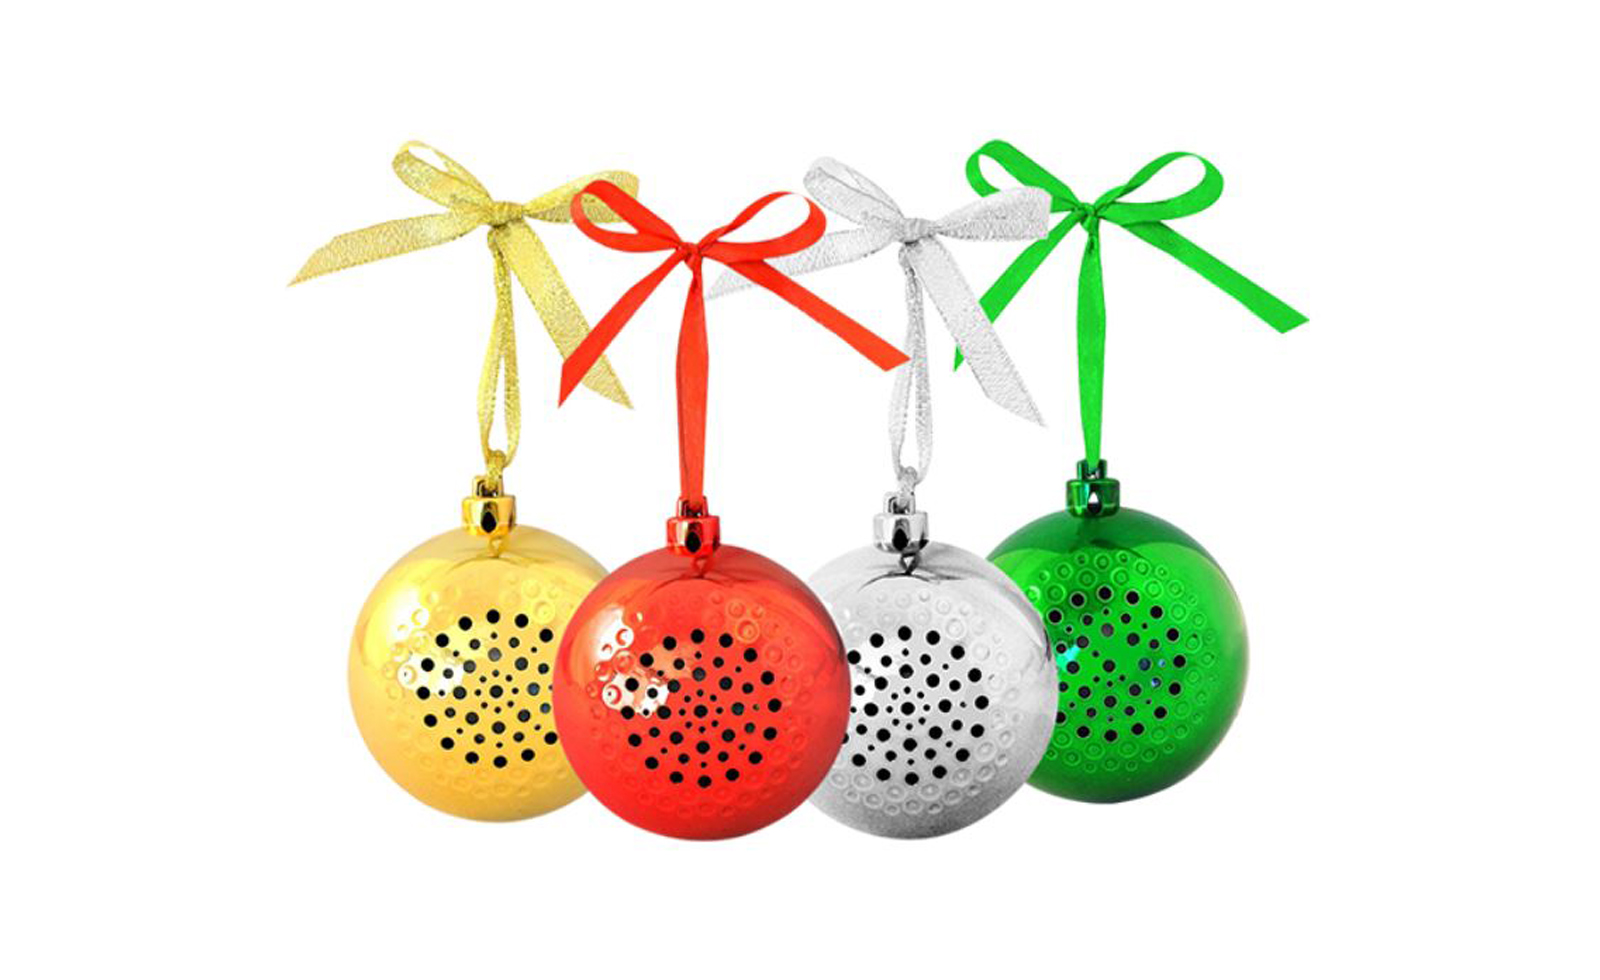 CHRISTMAS IS COMING: scopri lo speaker pallina di Natale!: CHRISTMAS IS COMING: scopri lo speaker pallina di Natale!